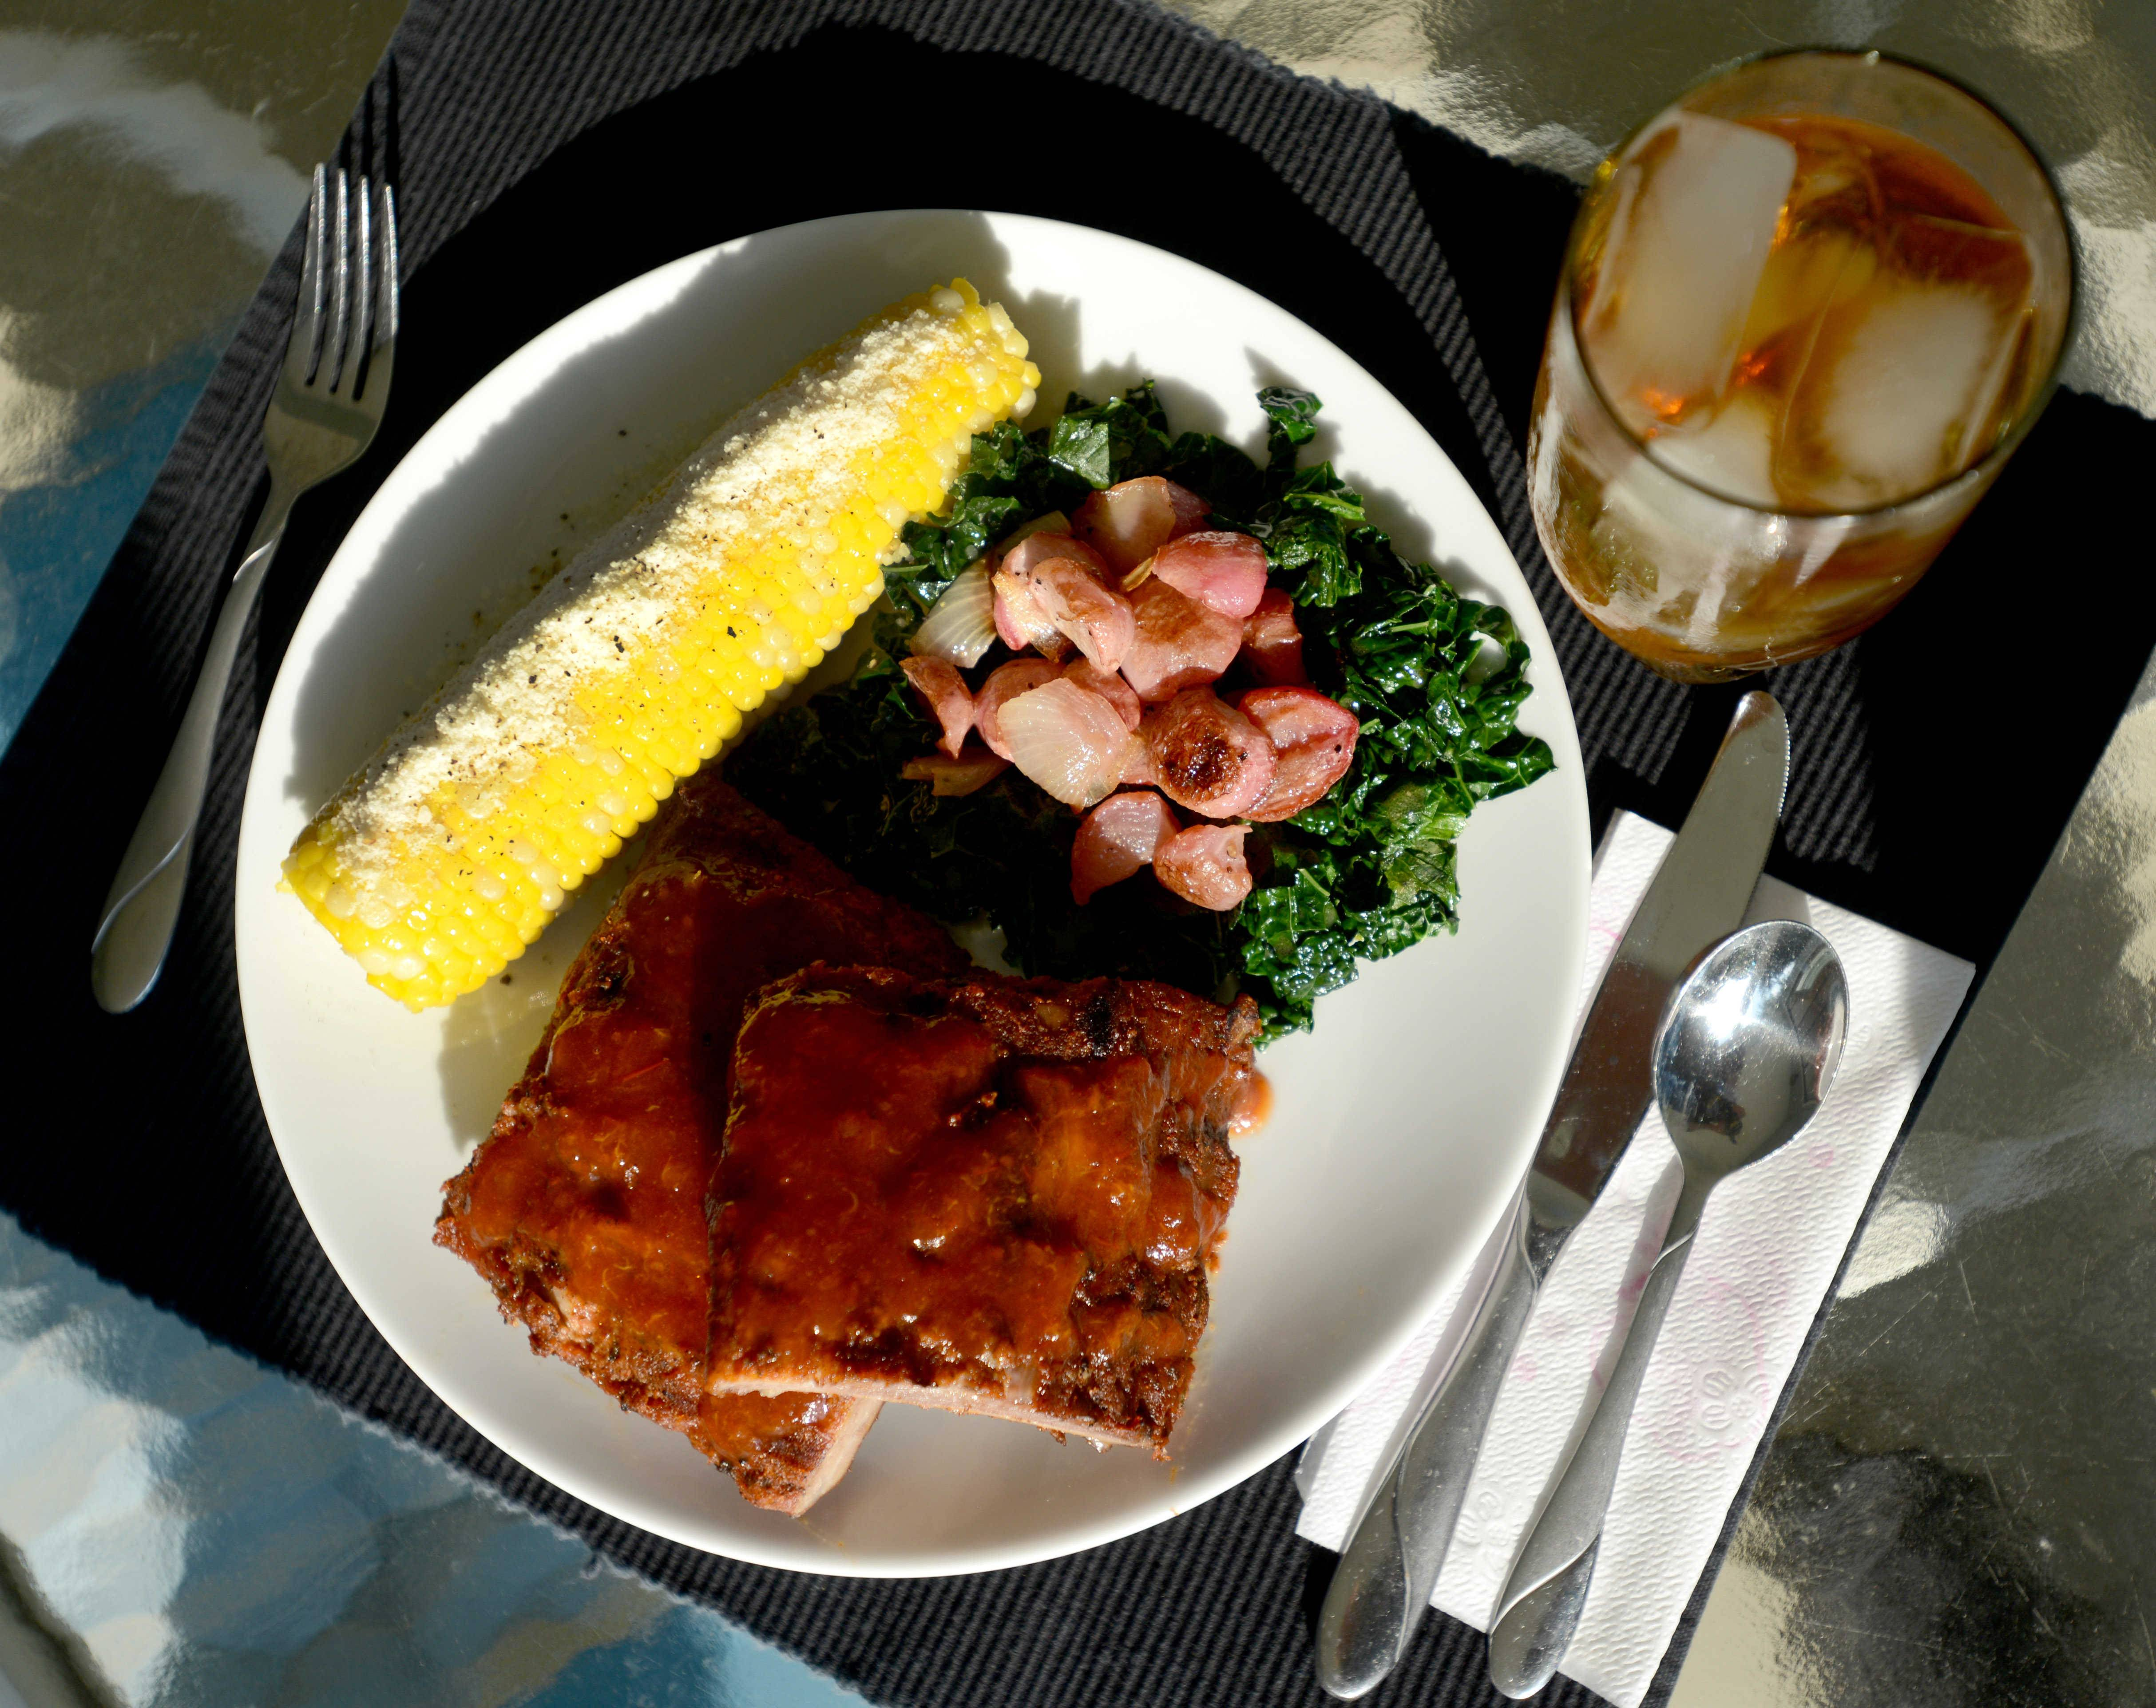 Joan Huenecke of Palatine created barbecue sauce from peach tea and apricot spread. A peach tea vinaigrette dresses her radish salad. She serves it with corn dusted with parmesan cheese.